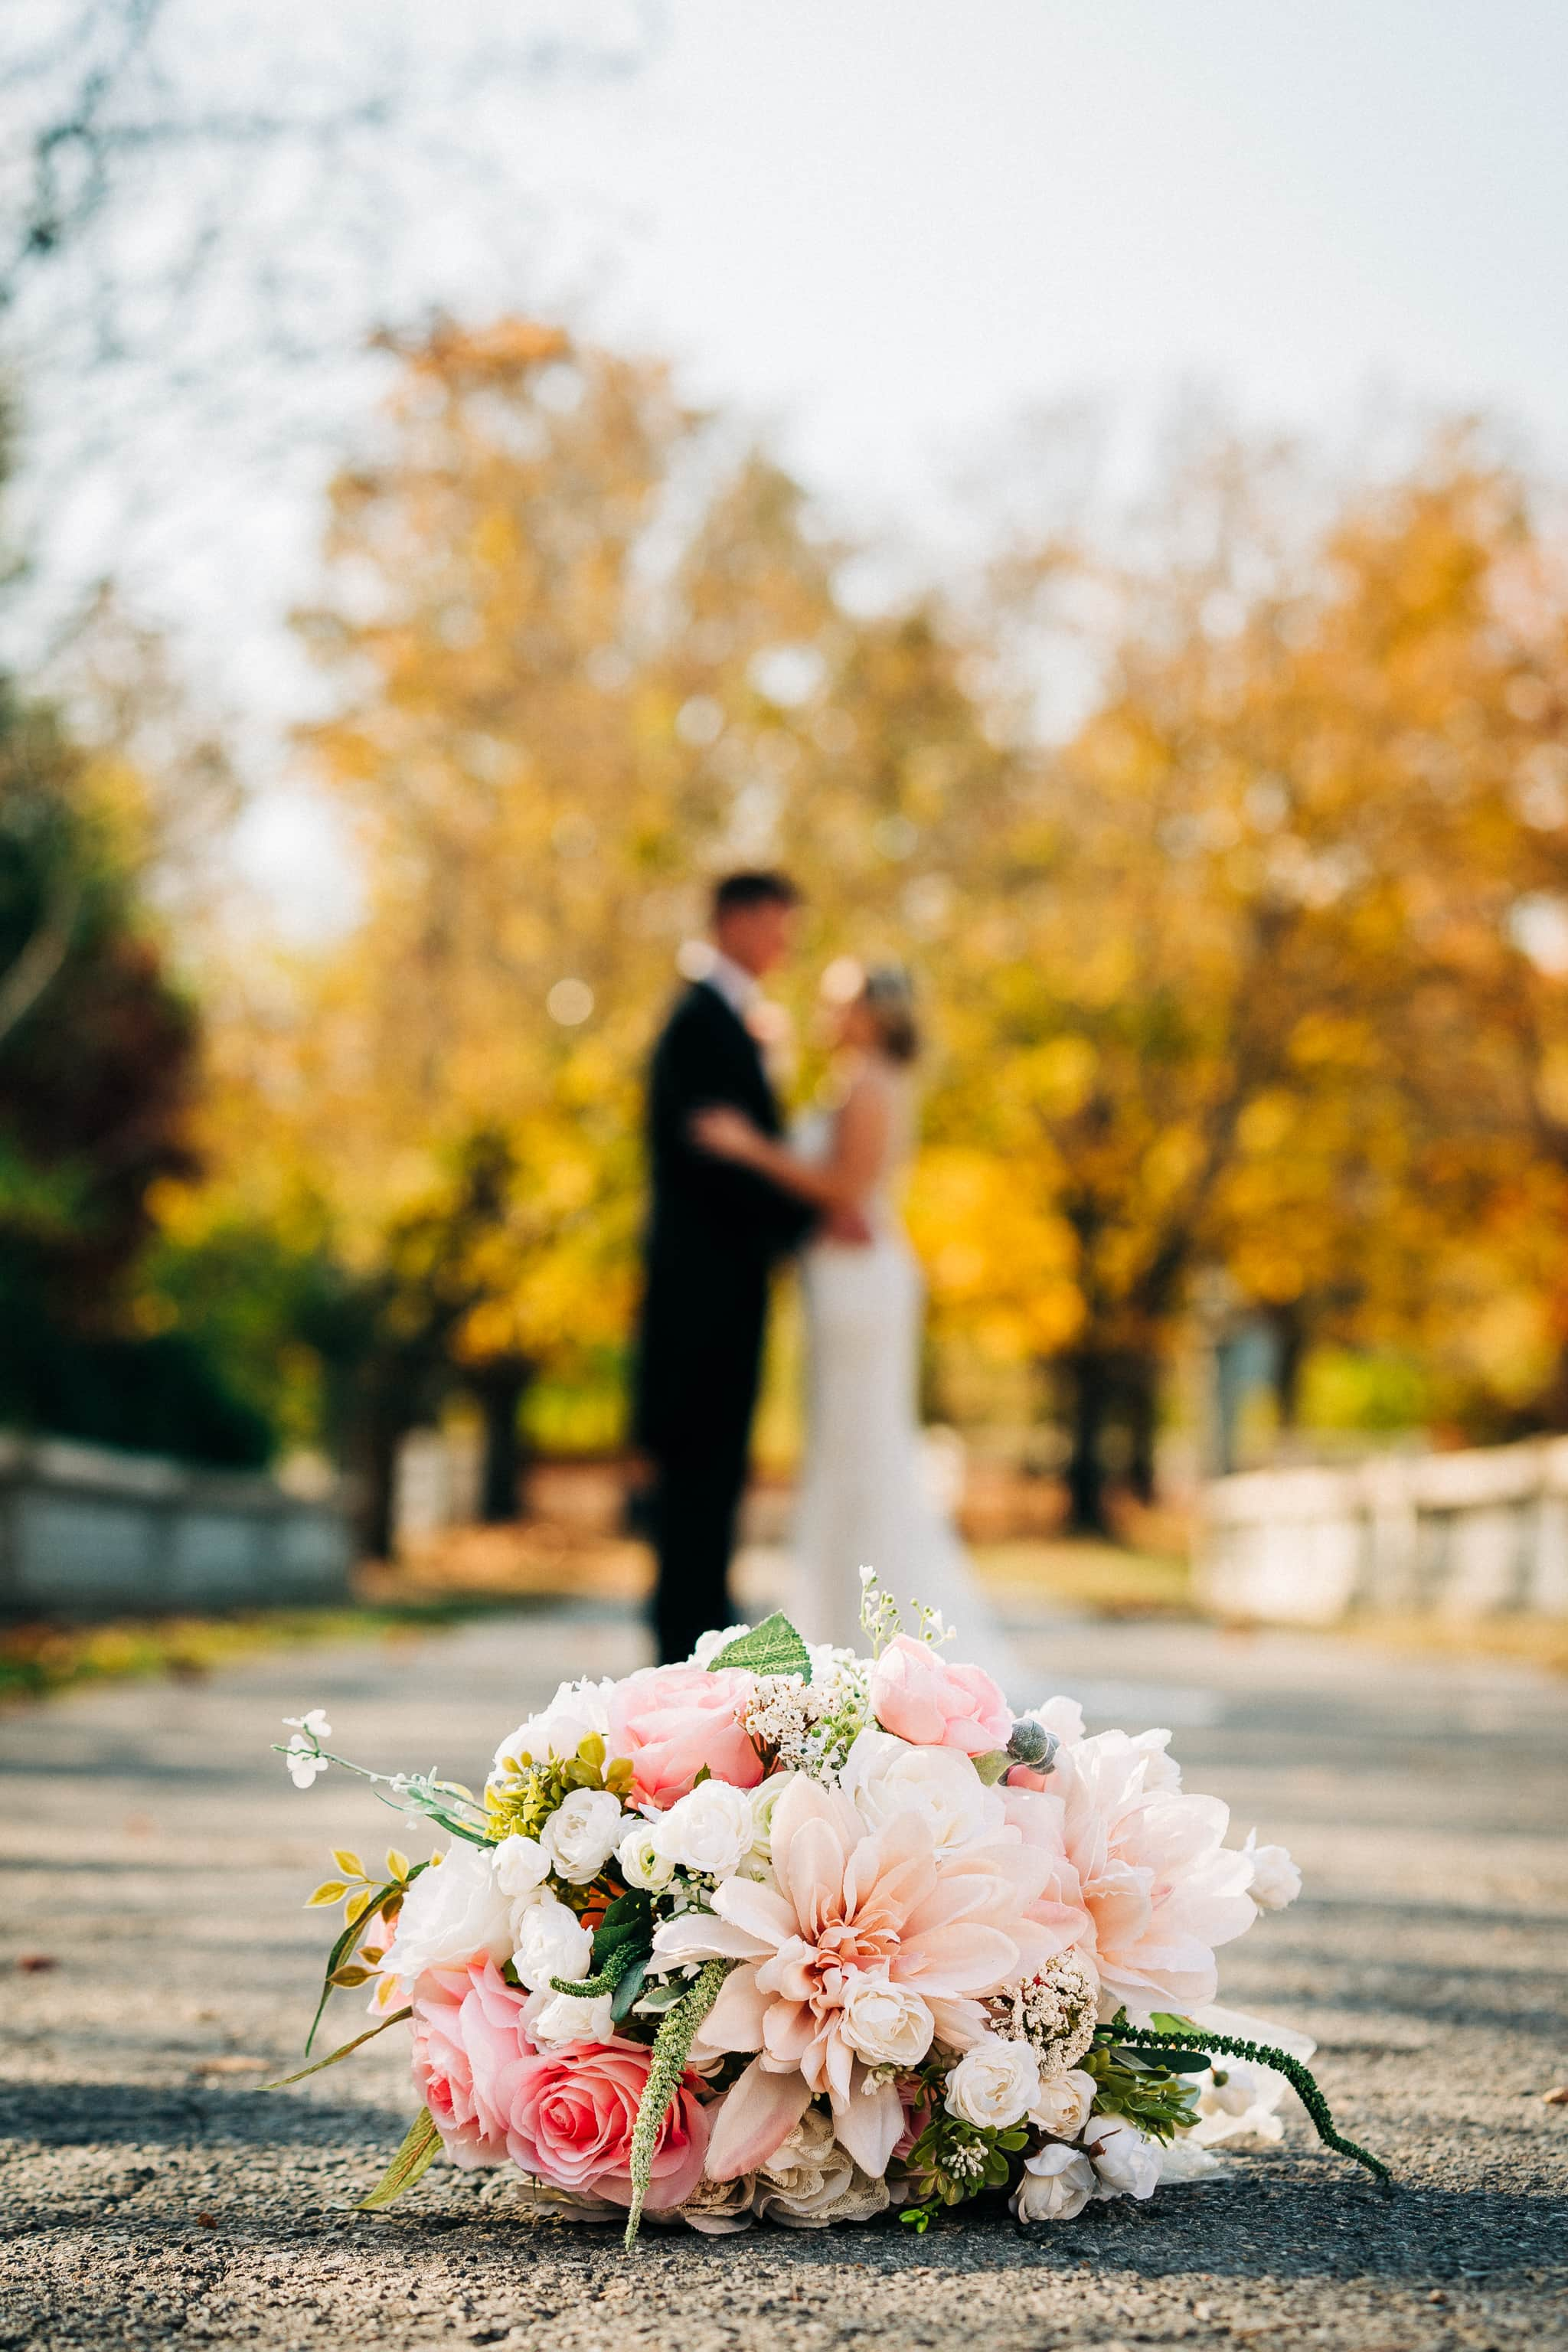 Couple embracing in the distance behind a silk bouquet.